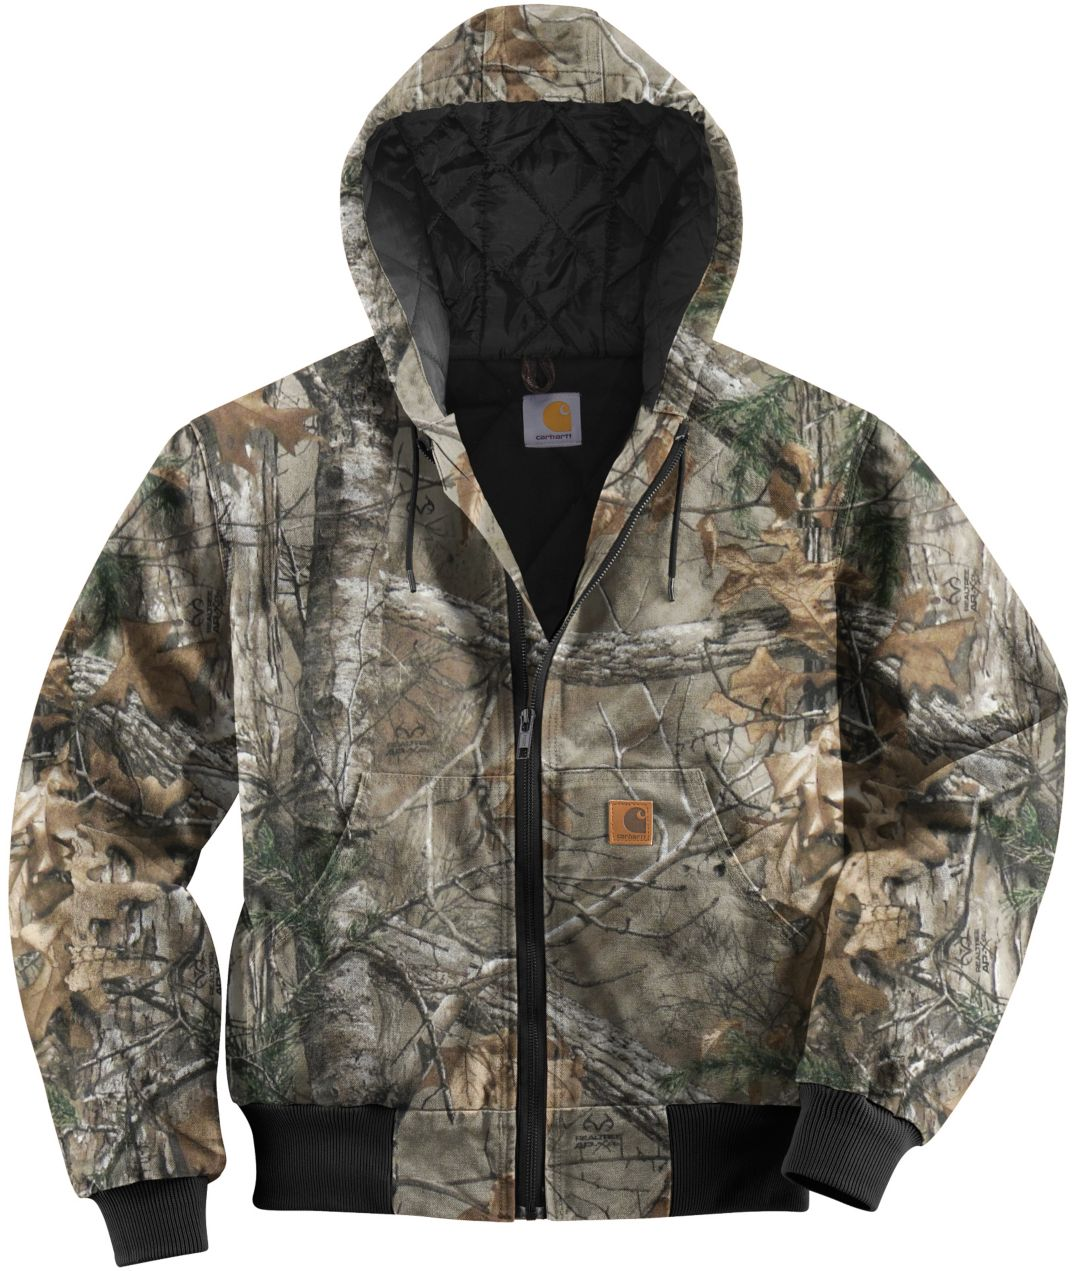 2e6614d62c7d0 Carhartt Men's Quilted-Flannel Lined Camo Active Jacket. noImageFound. 1